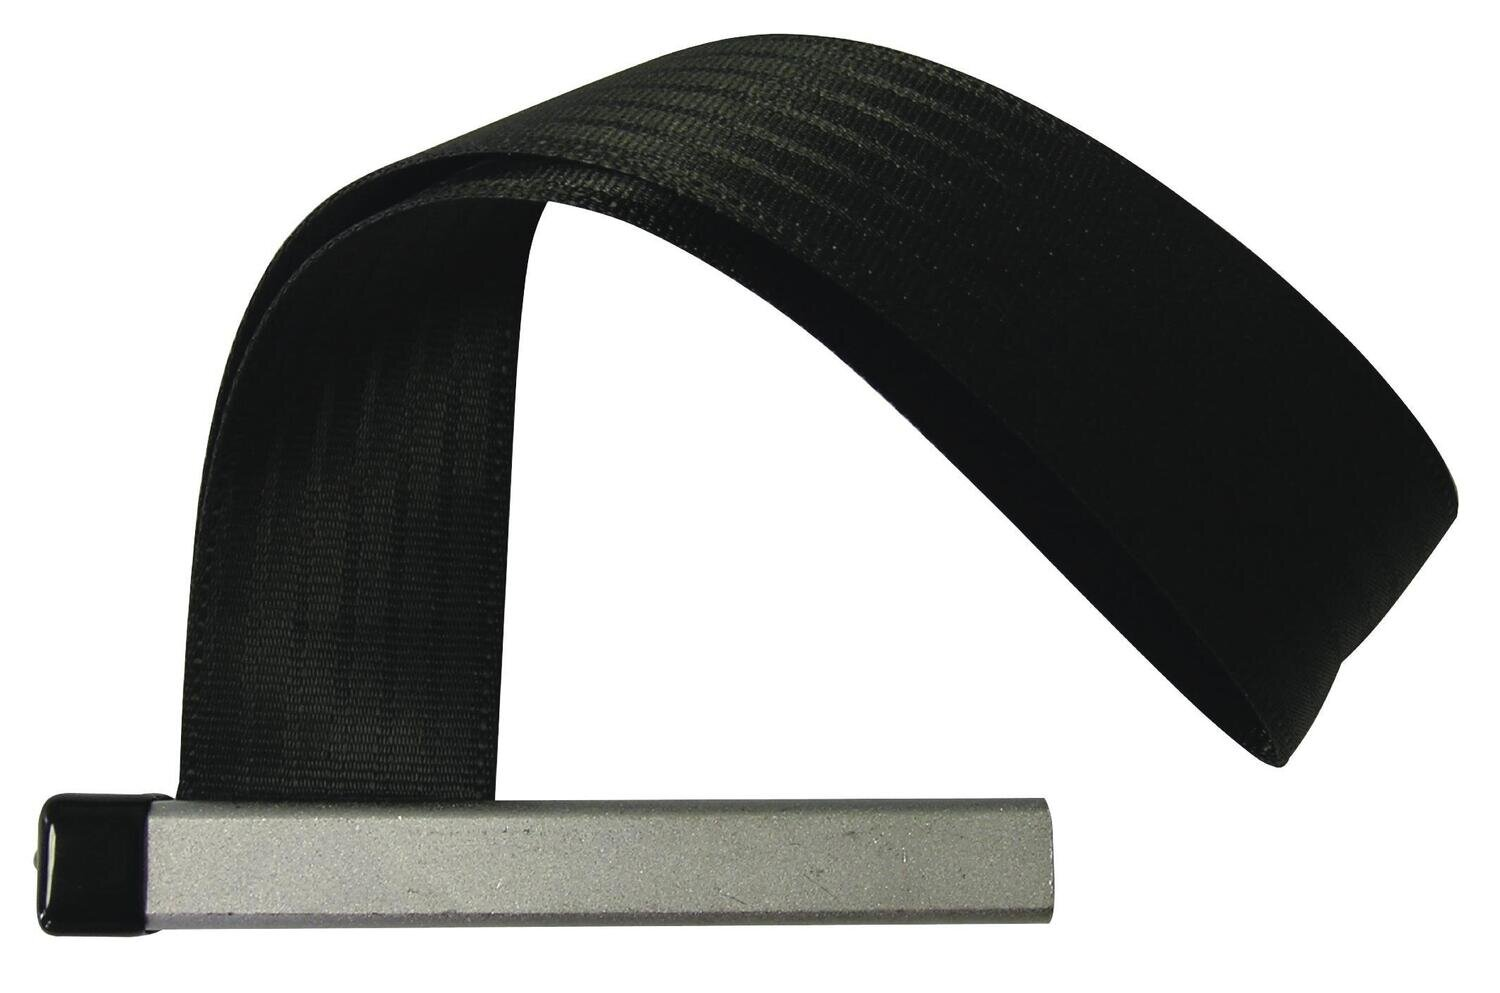 HR814 - Strap Filter Wrench